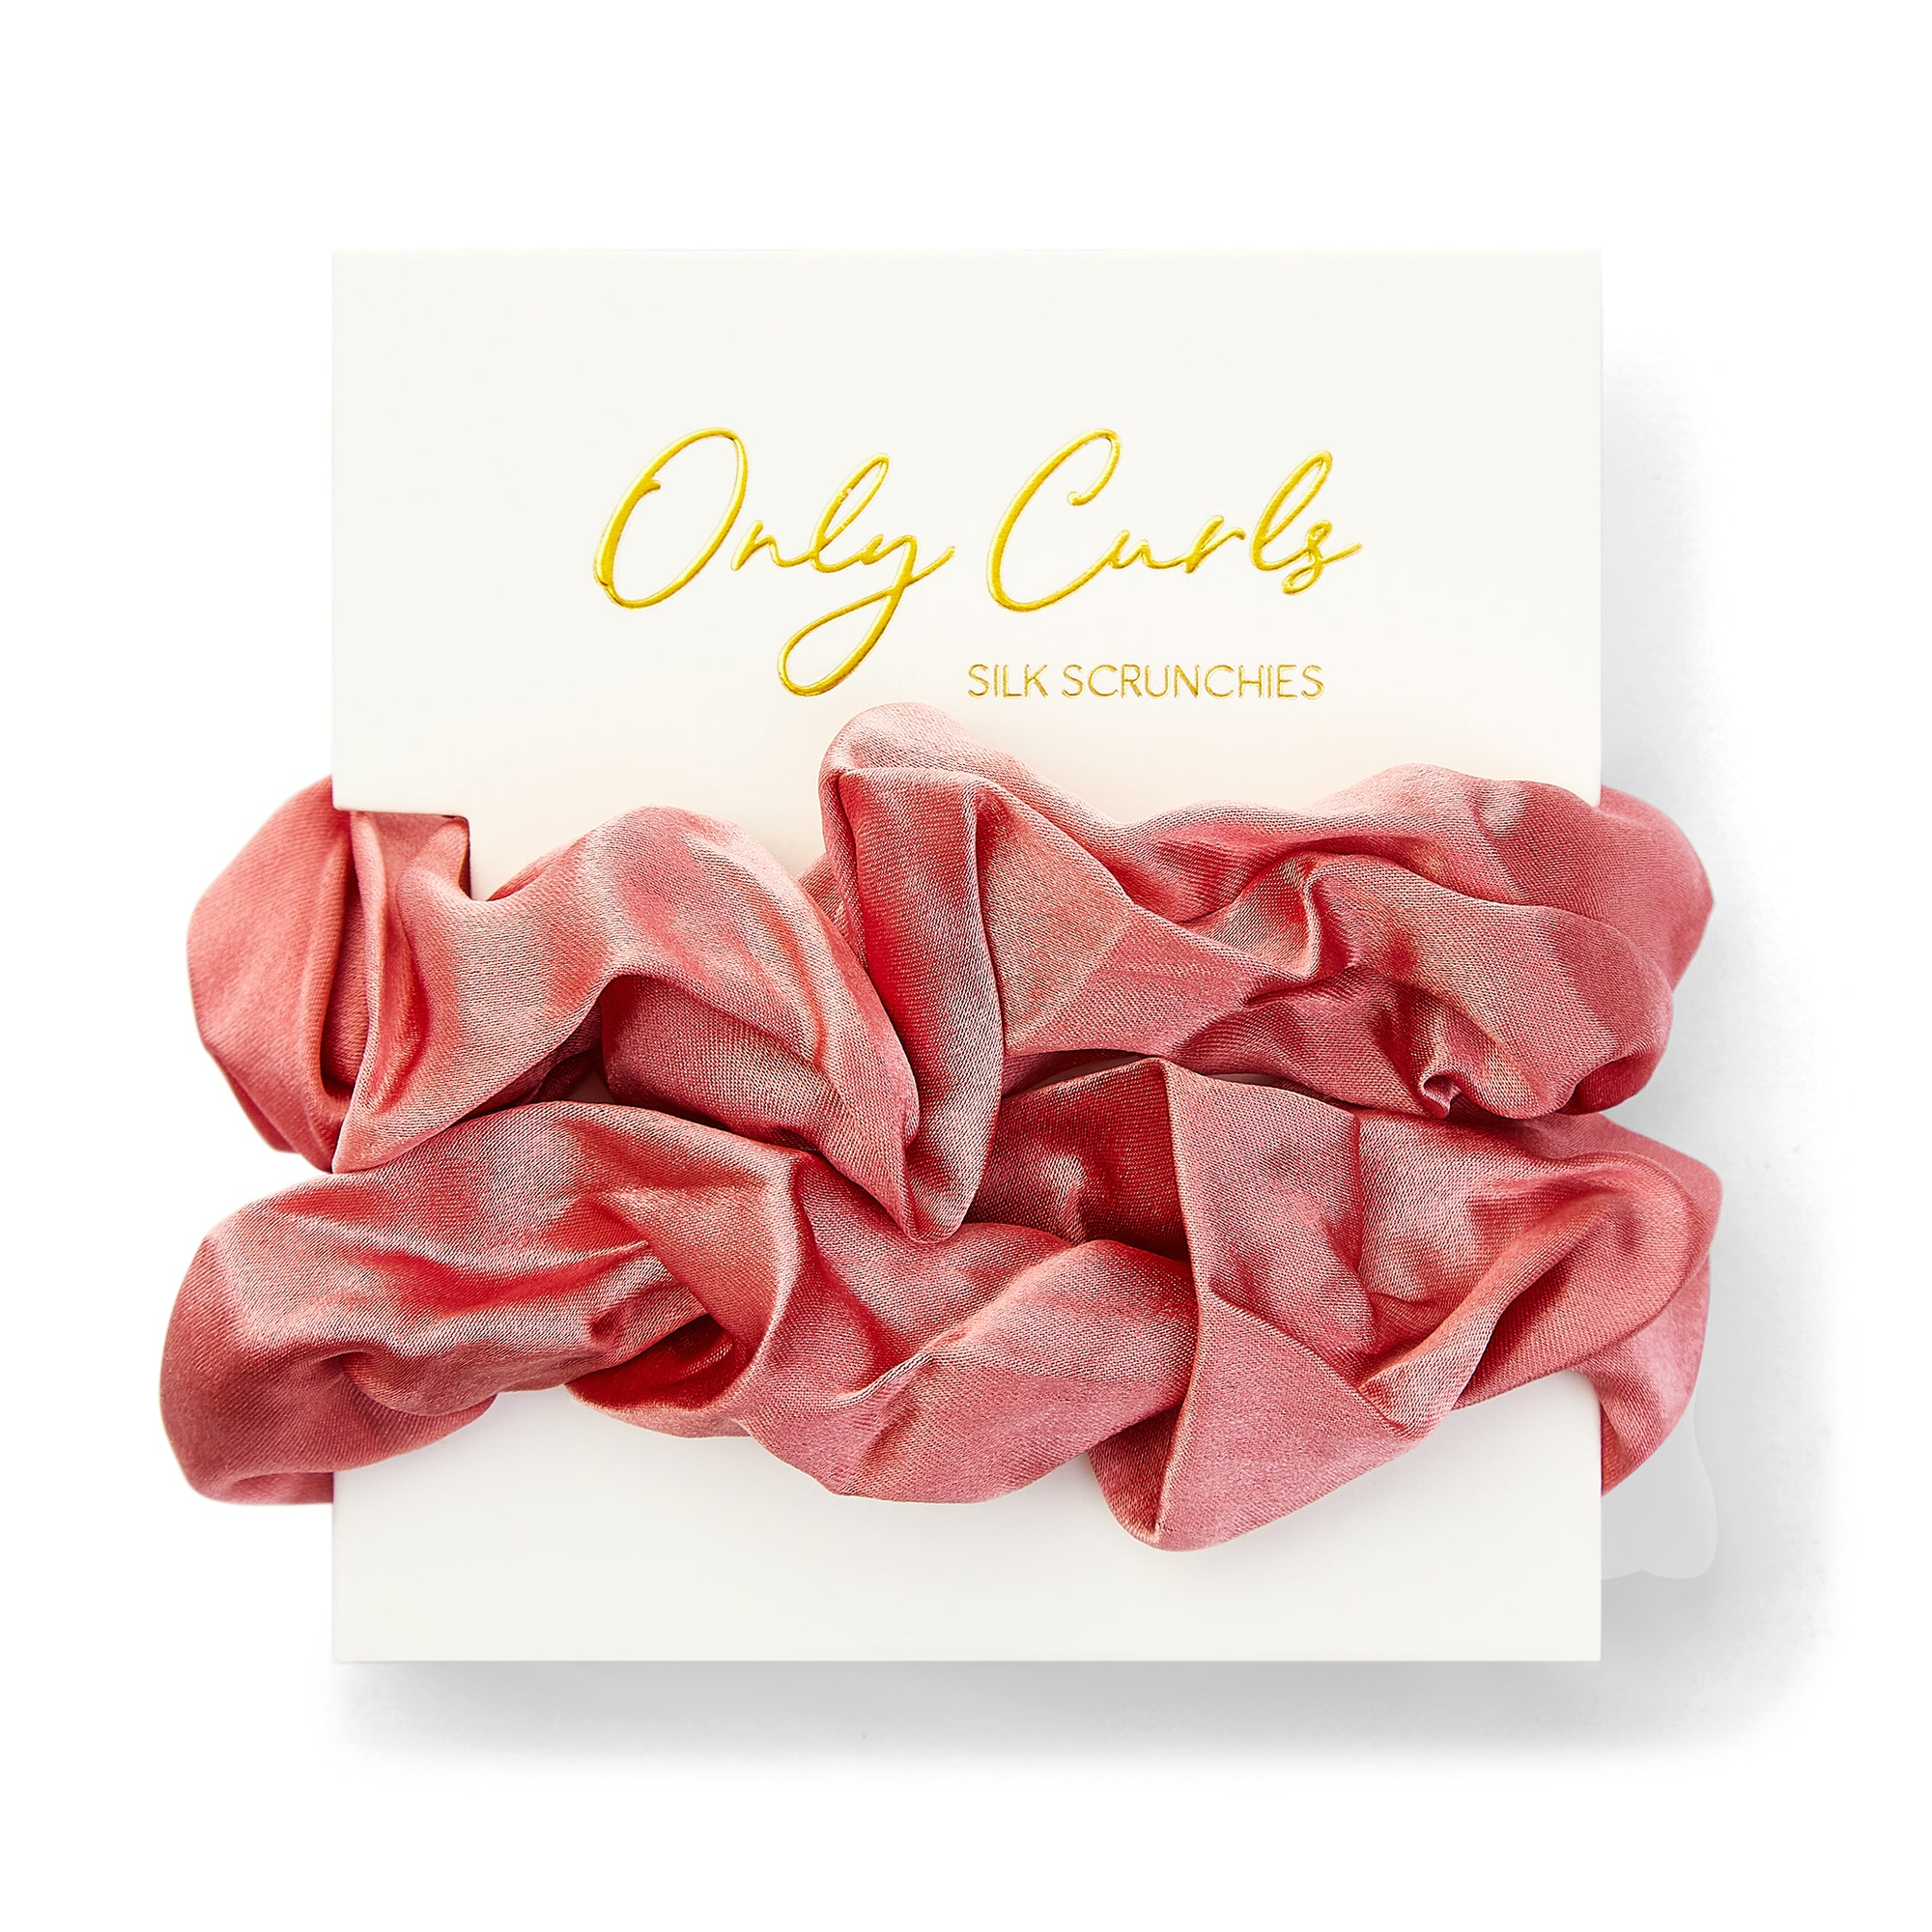 Only Curls Silk Scrunchies Dusty Rose - Only Curls